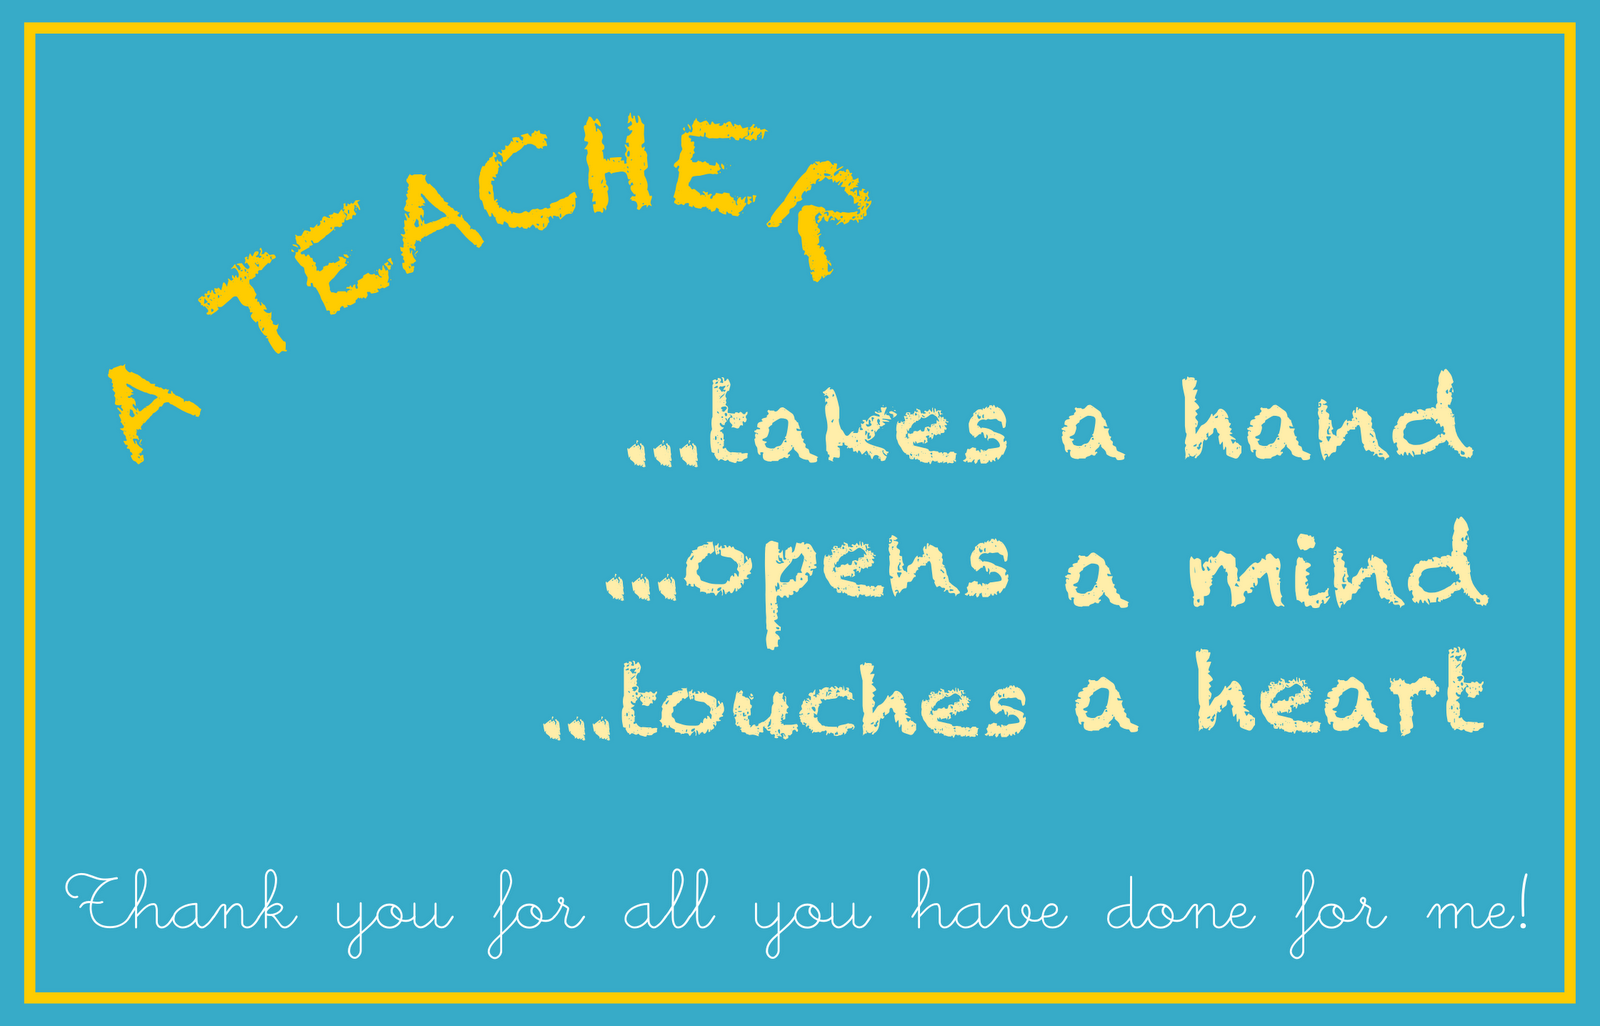 Free Printable Teacher Appreciation Cards: www.nyatusewu.dynu.net/free-printable-teacher-appreciation-thank...